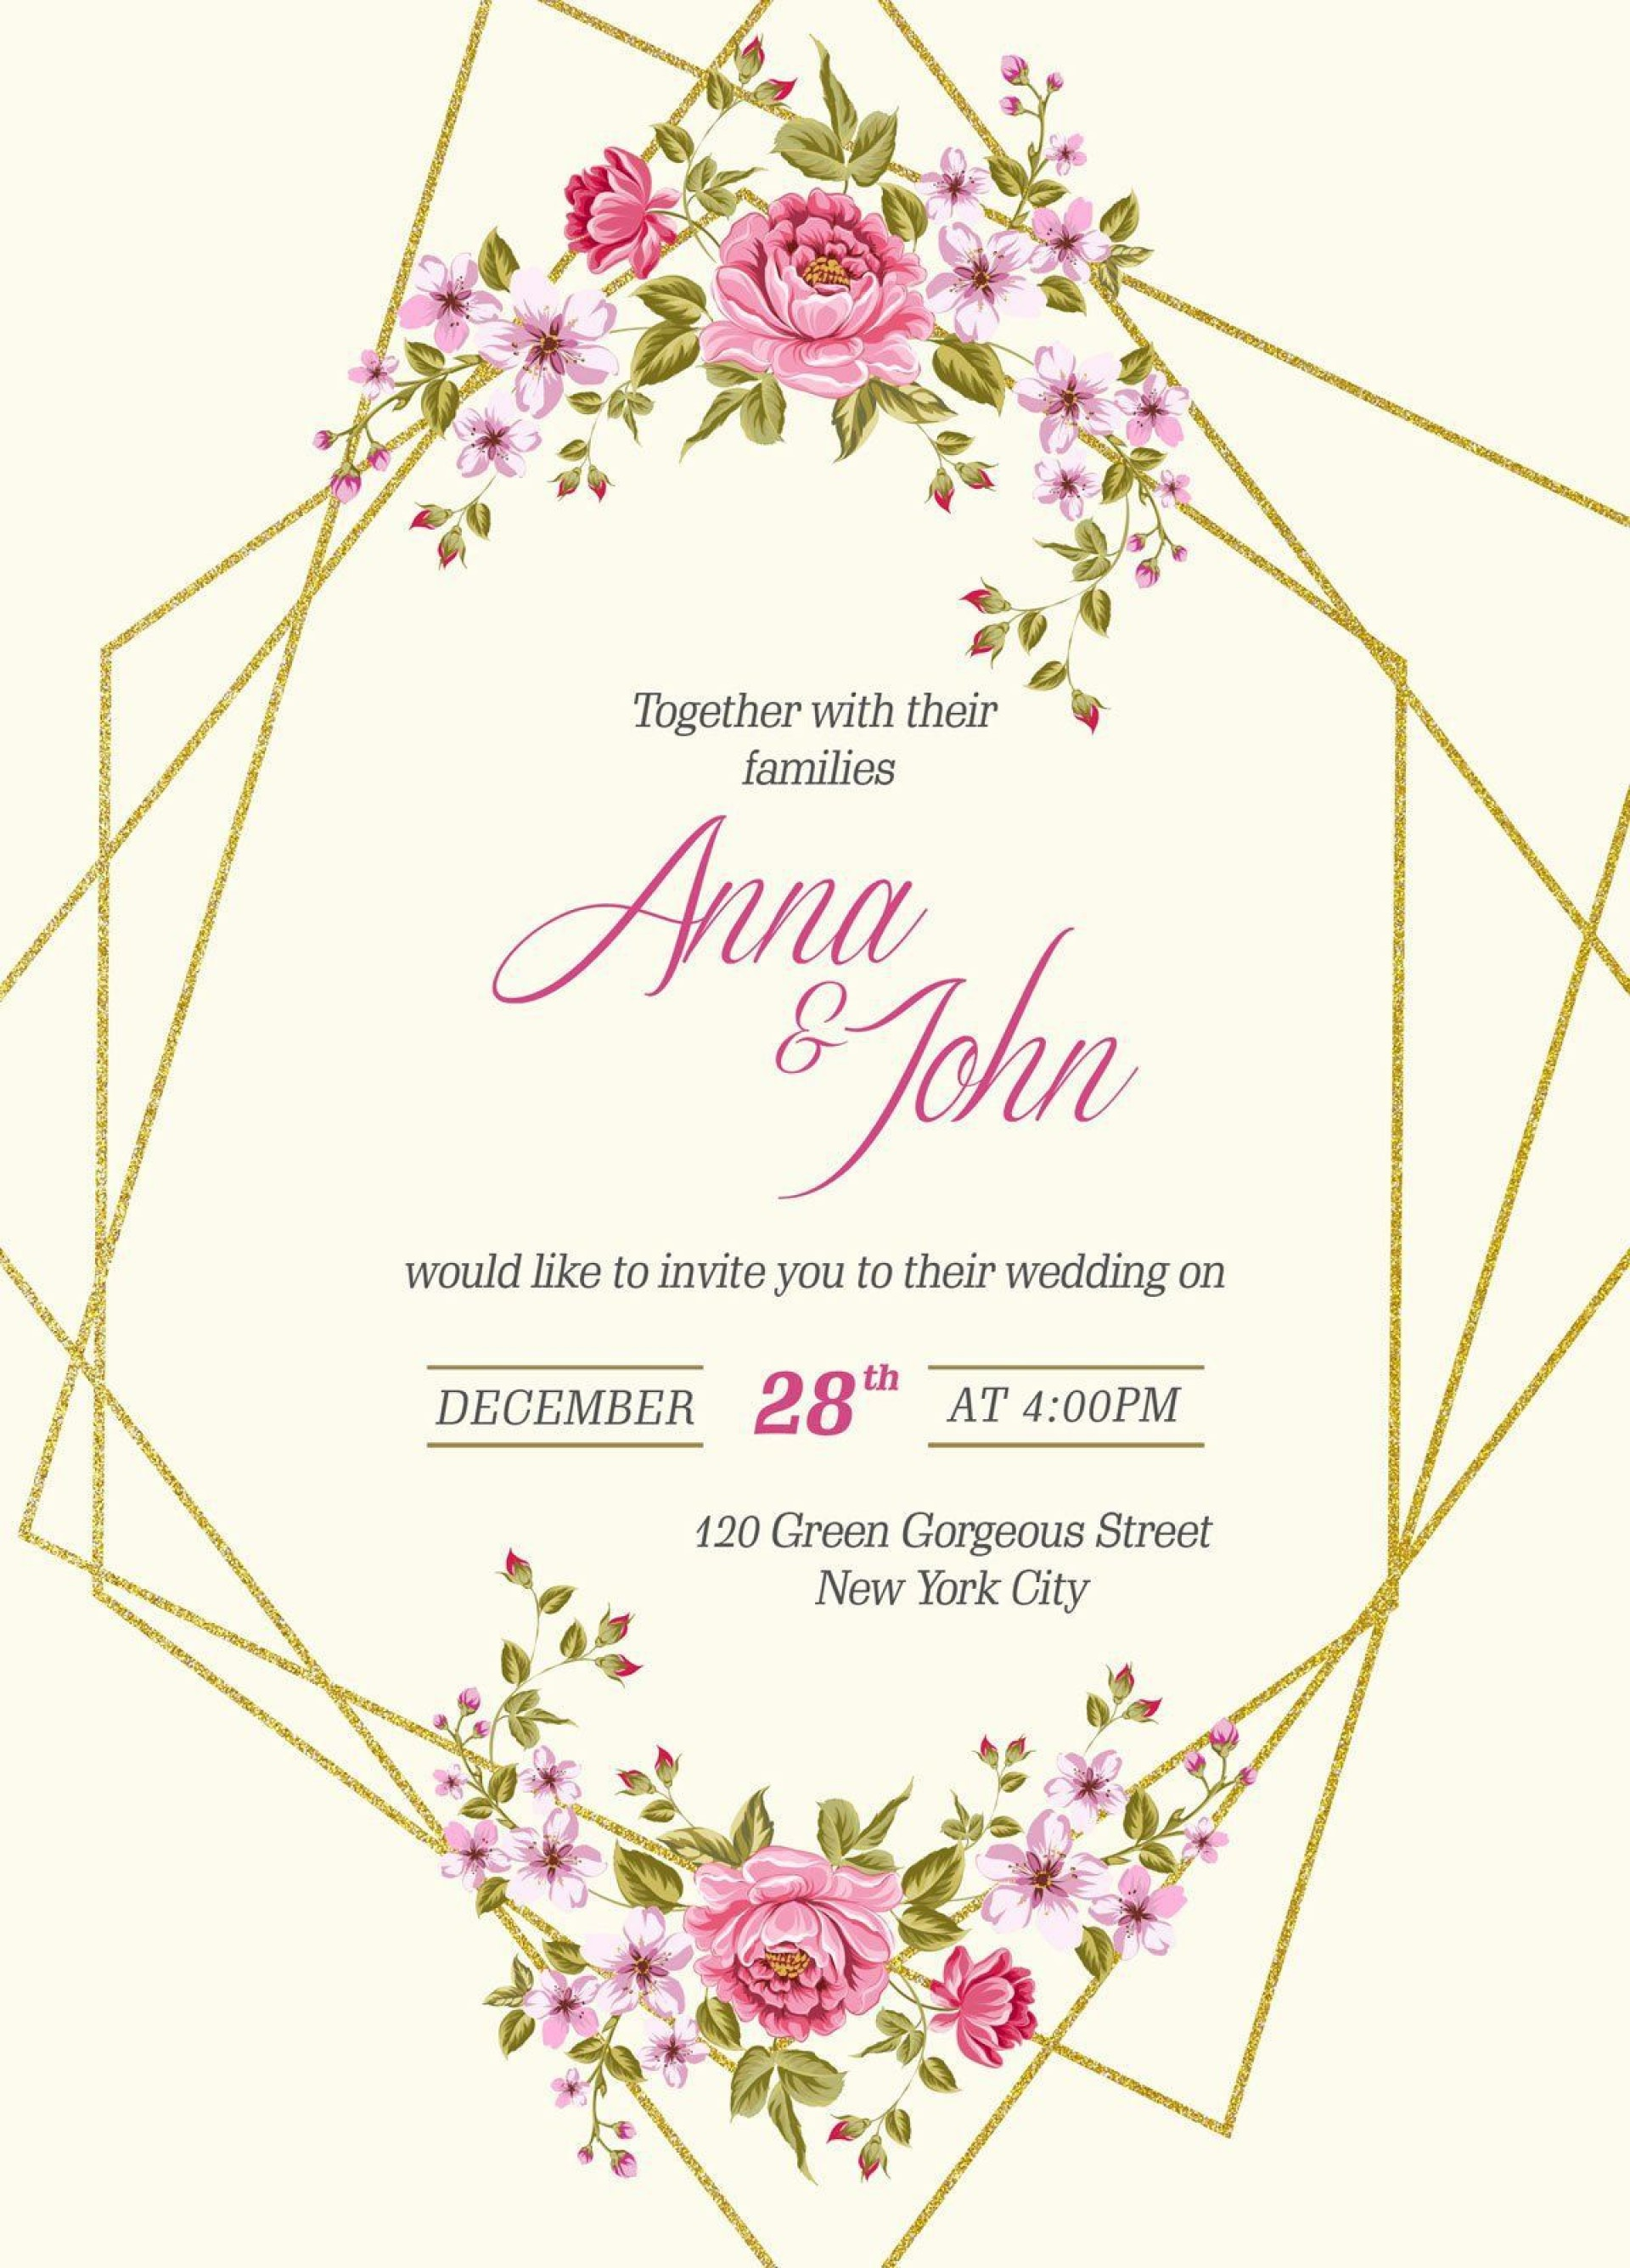 003 Magnificent Free Wedding Invitation Template Printable Picture  For Microsoft Word Mac1920